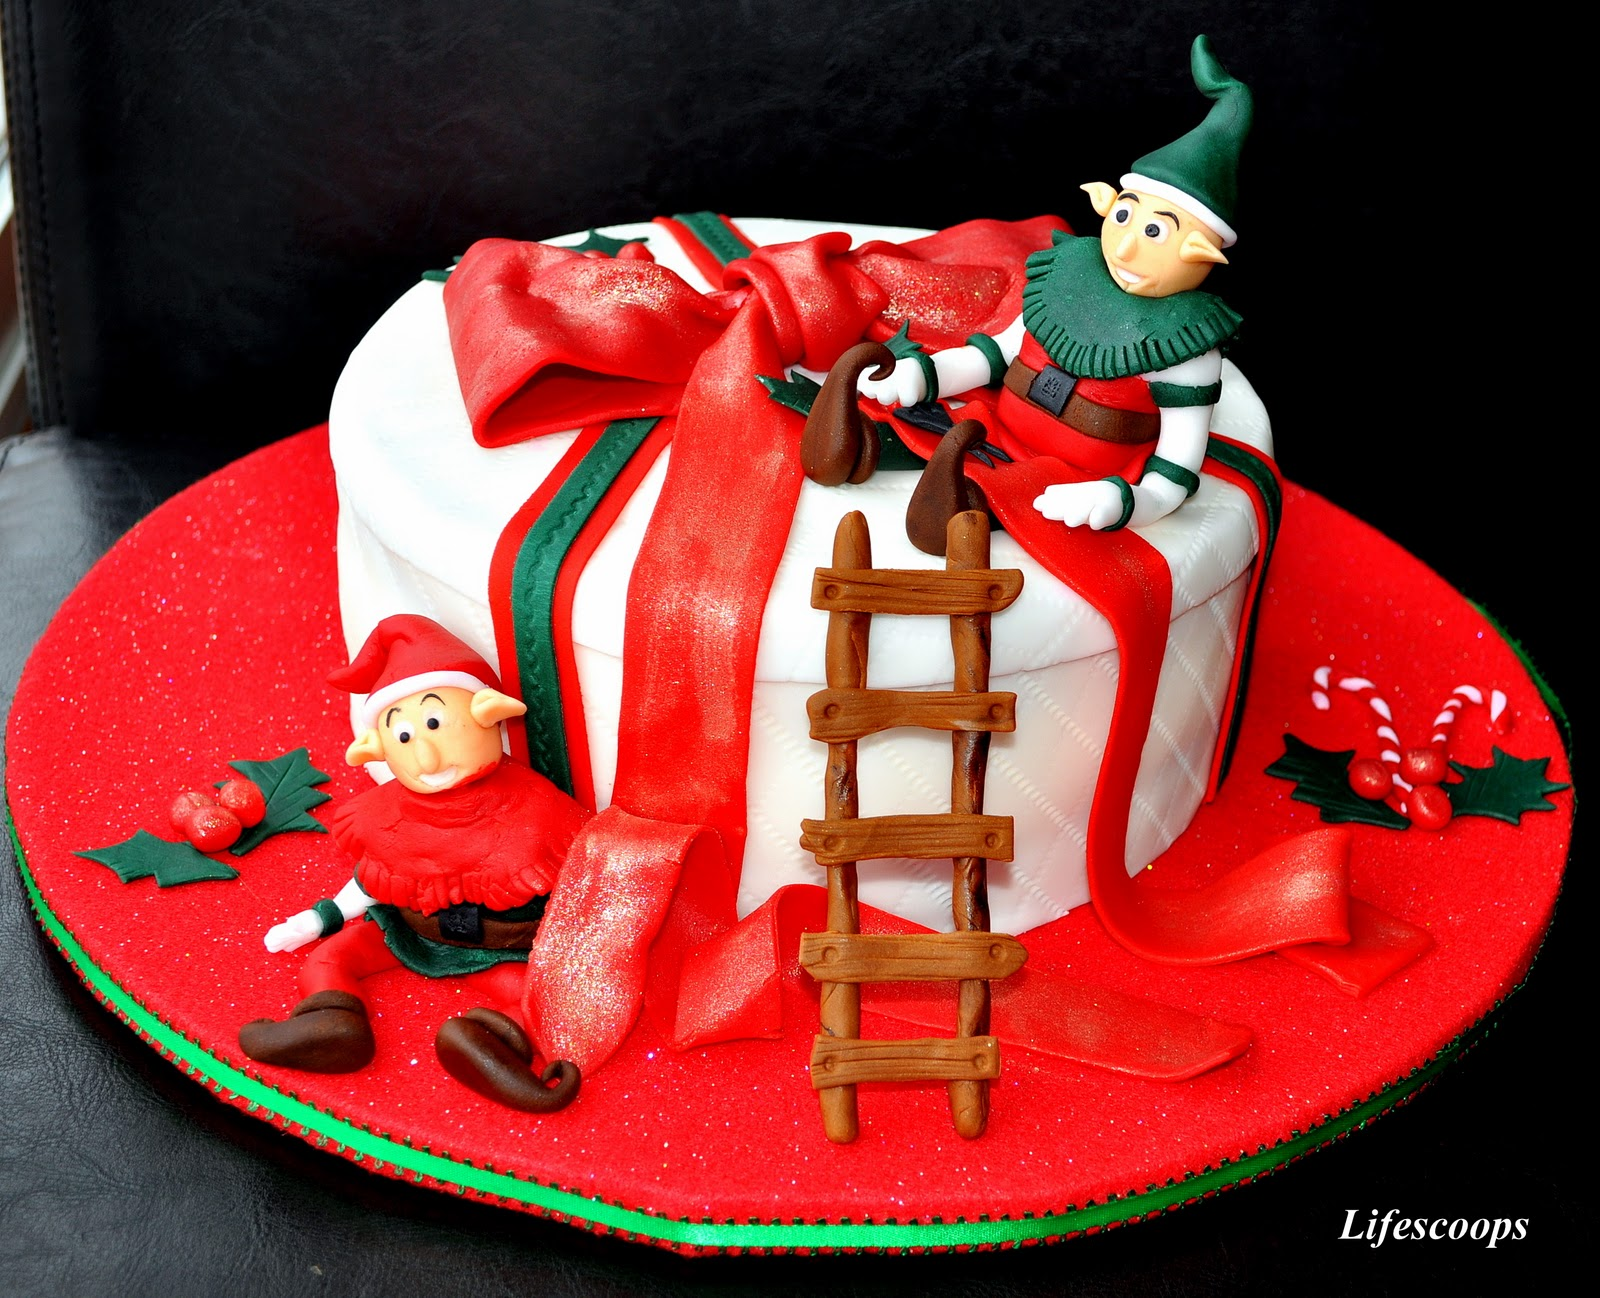 Life Scoops: X'mas Cake - Santa's Elves at Work (Spiced ...